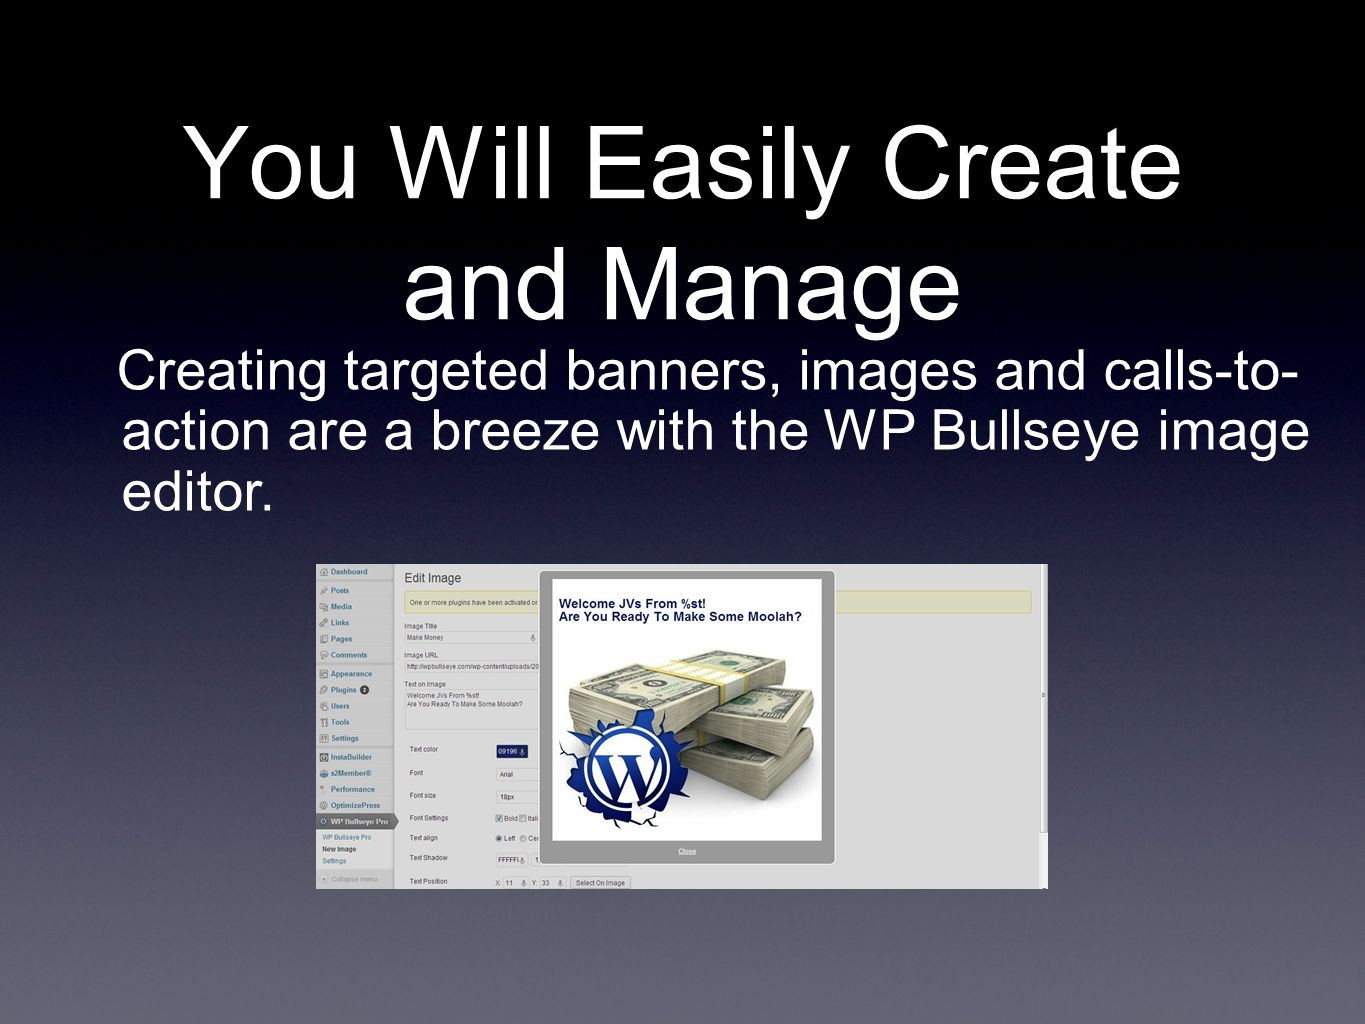 You Will Easily Create and Manage Creating targeted banners, images and calls-to- action are a breeze with the WP Bullseye image editor.